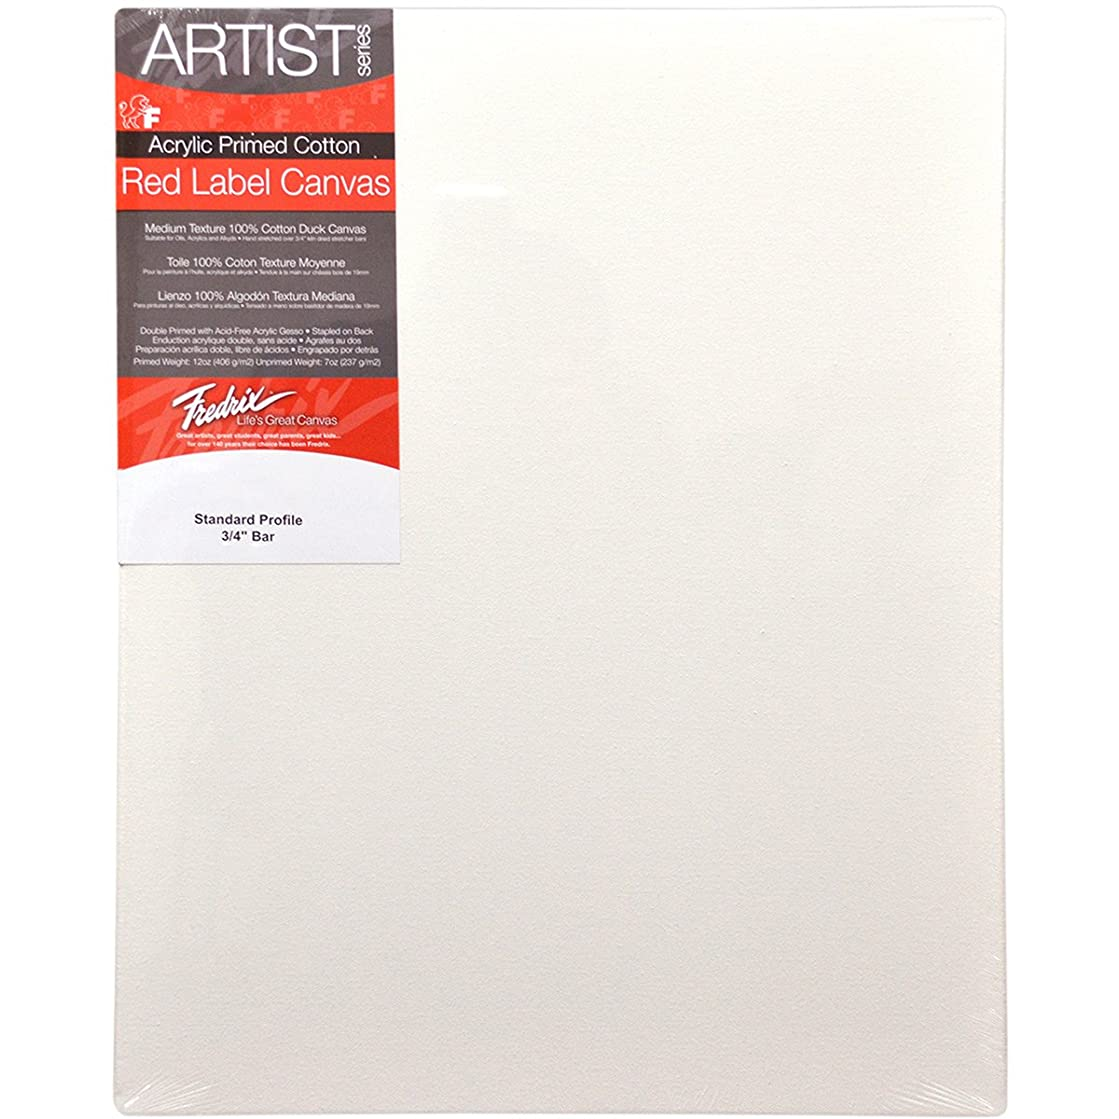 Fredrix 5018 Red Label Stretched Canvas, 12 x 16 Inches